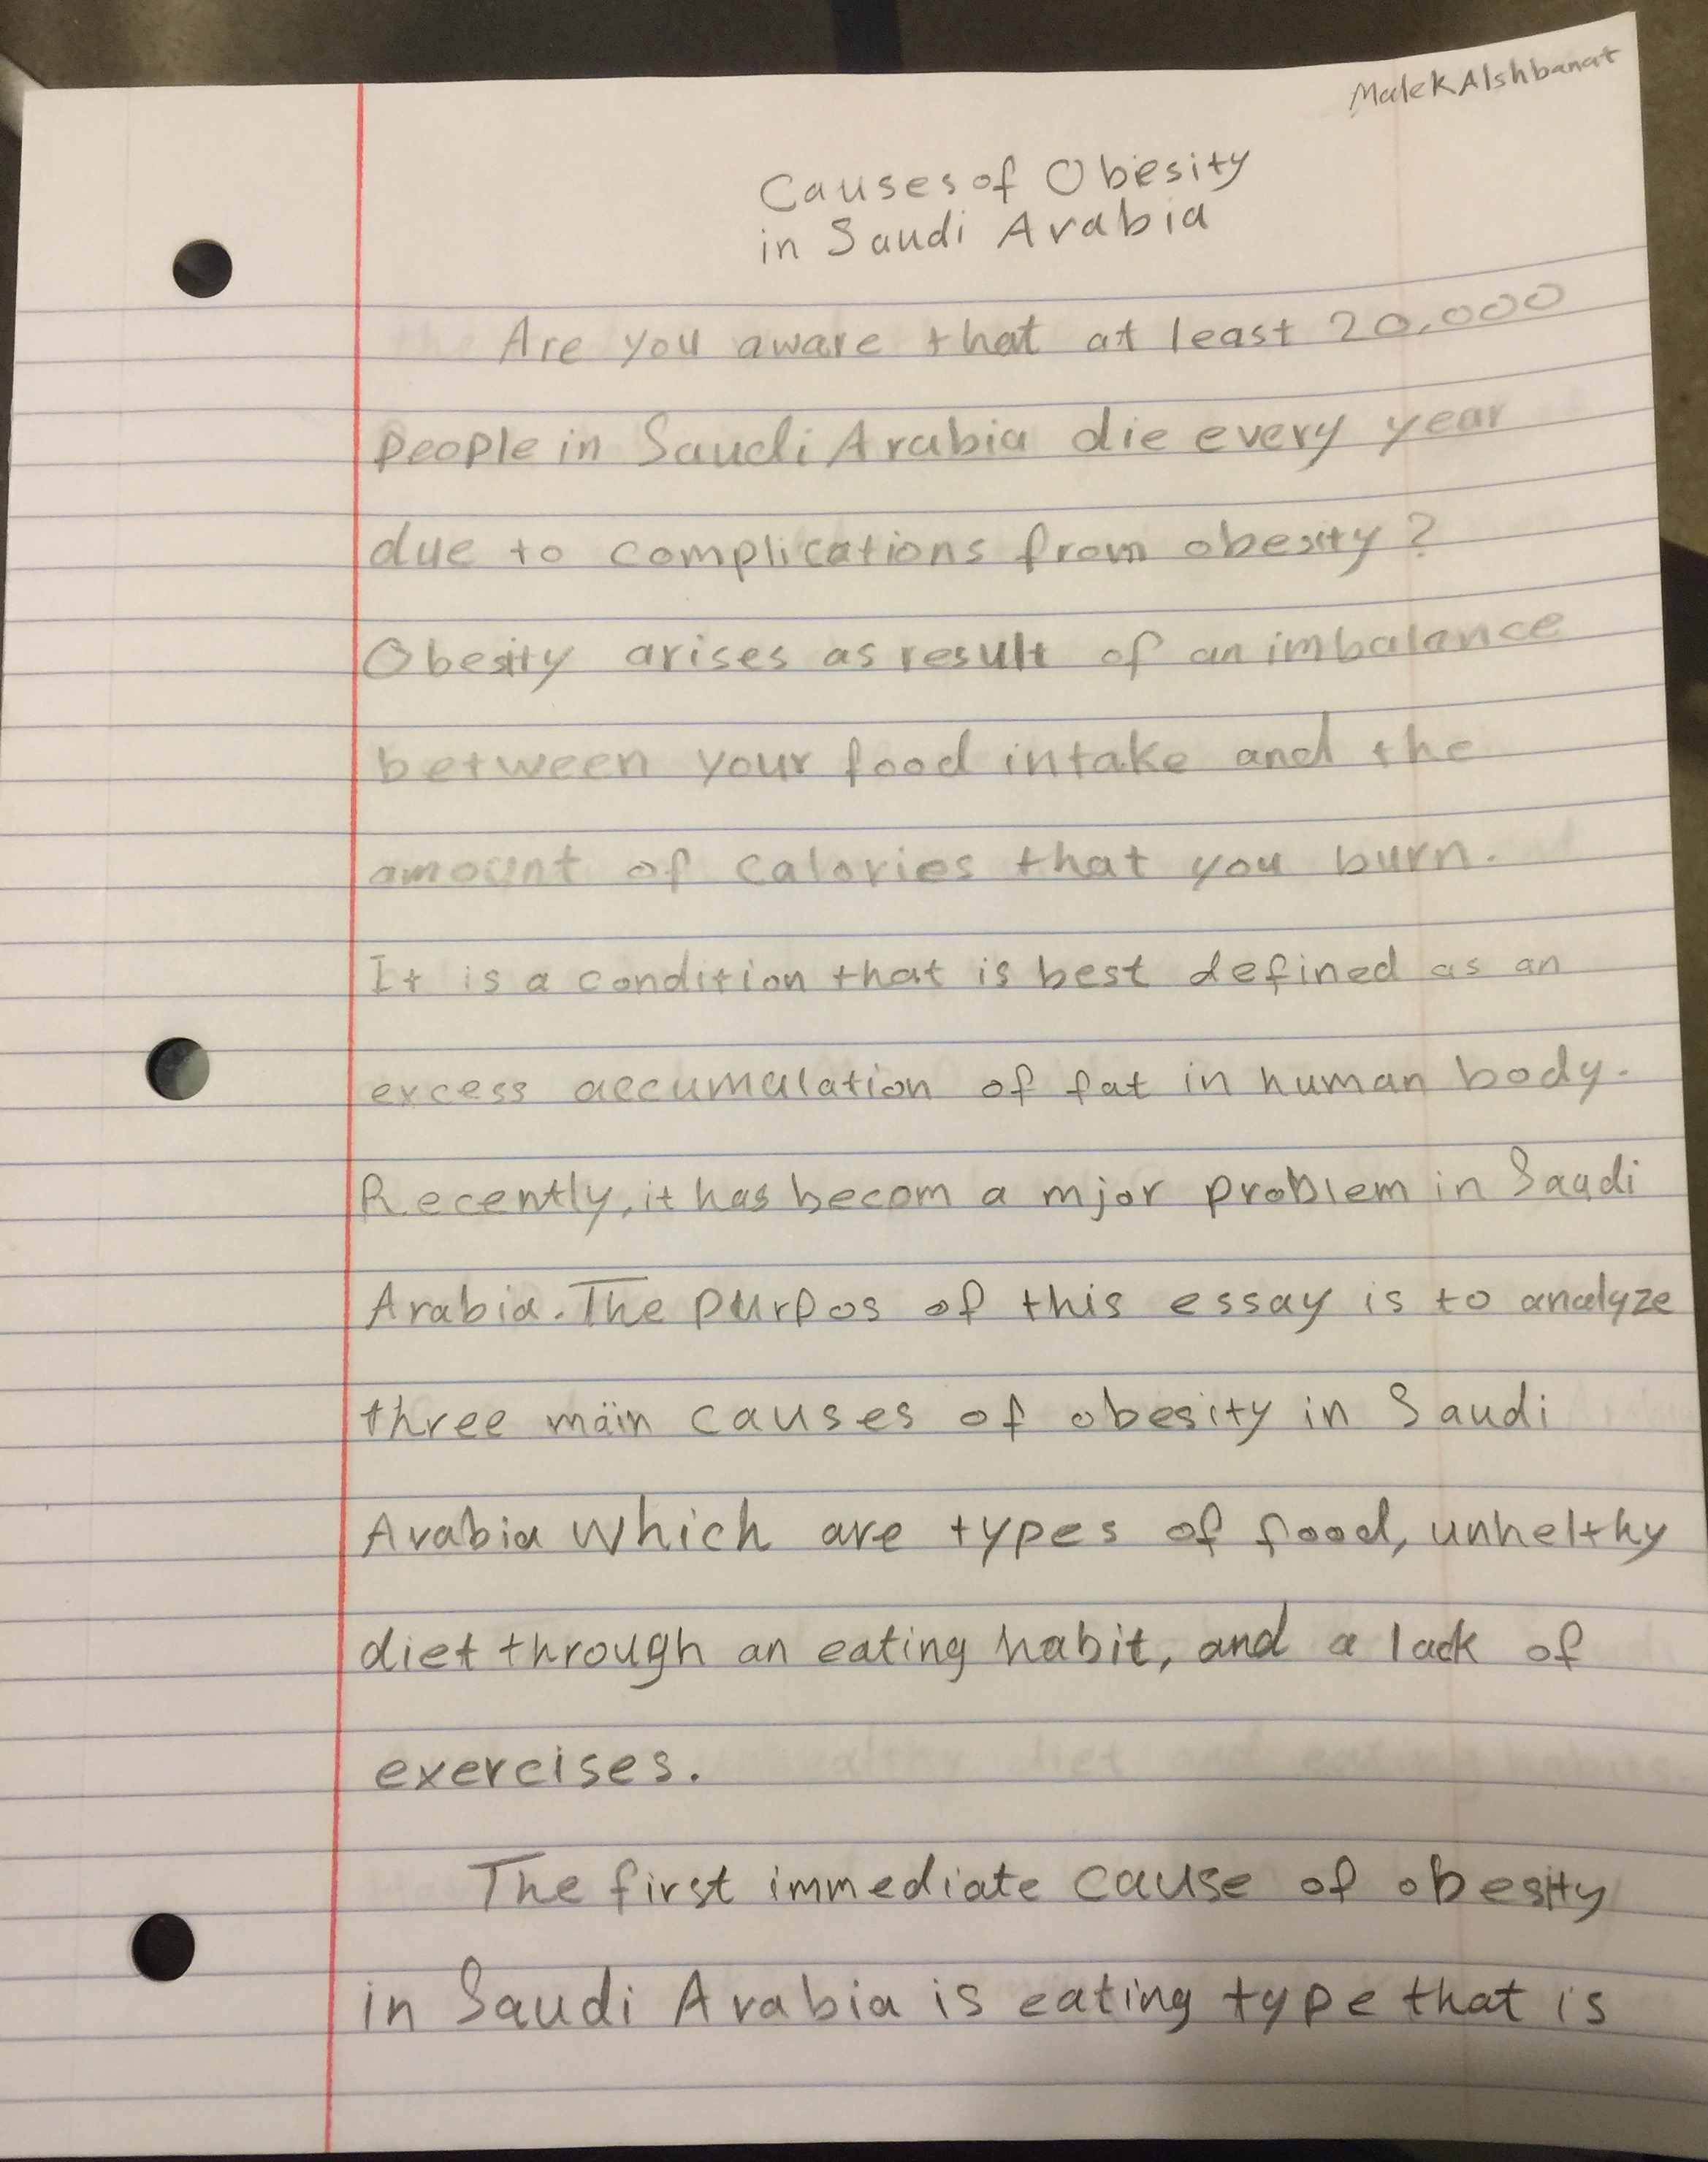 informative essay about obesity